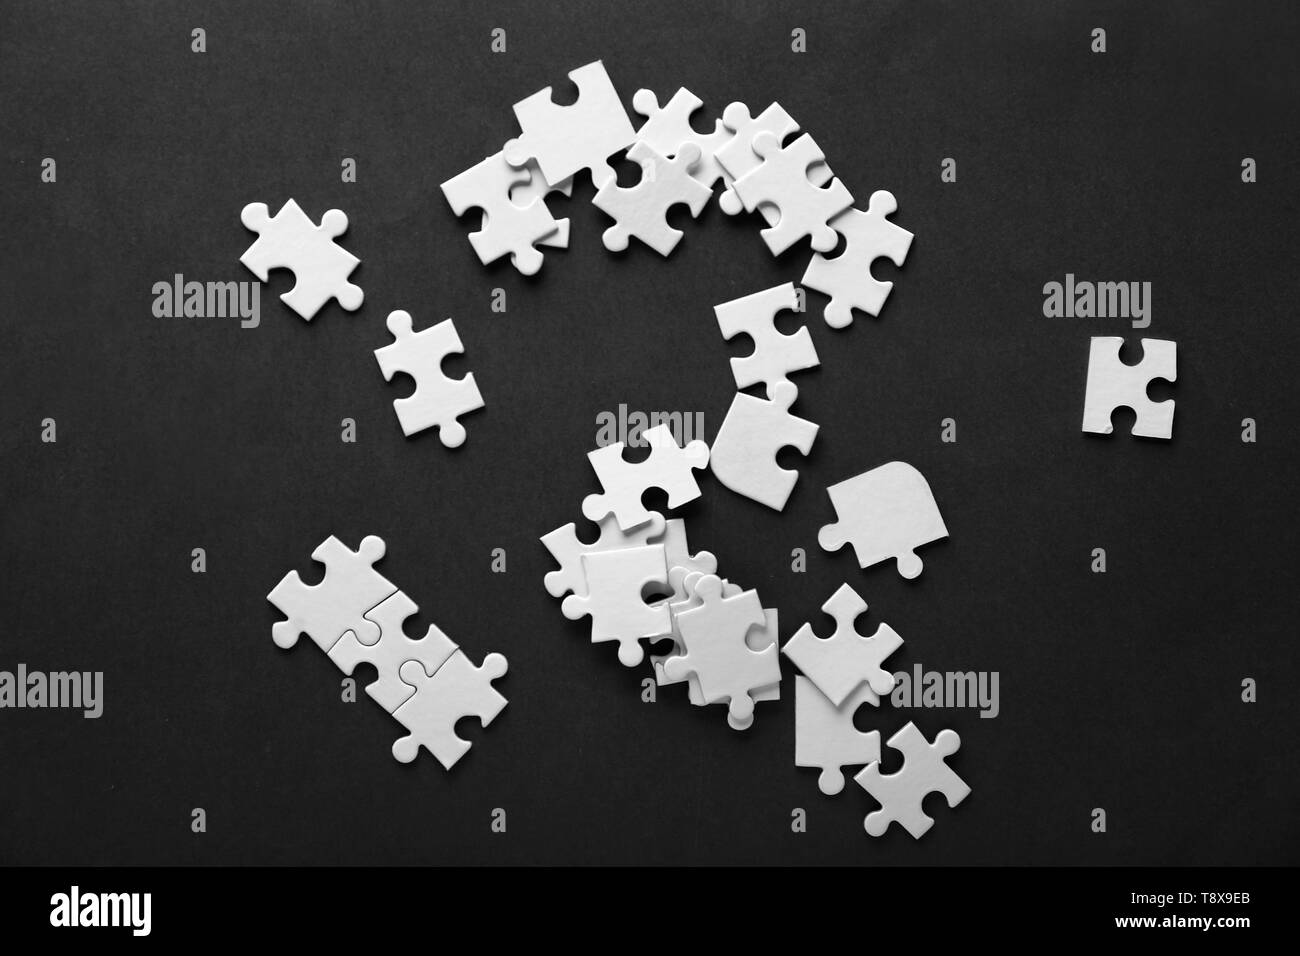 Pieces of jigsaw puzzle on color background - Stock Image